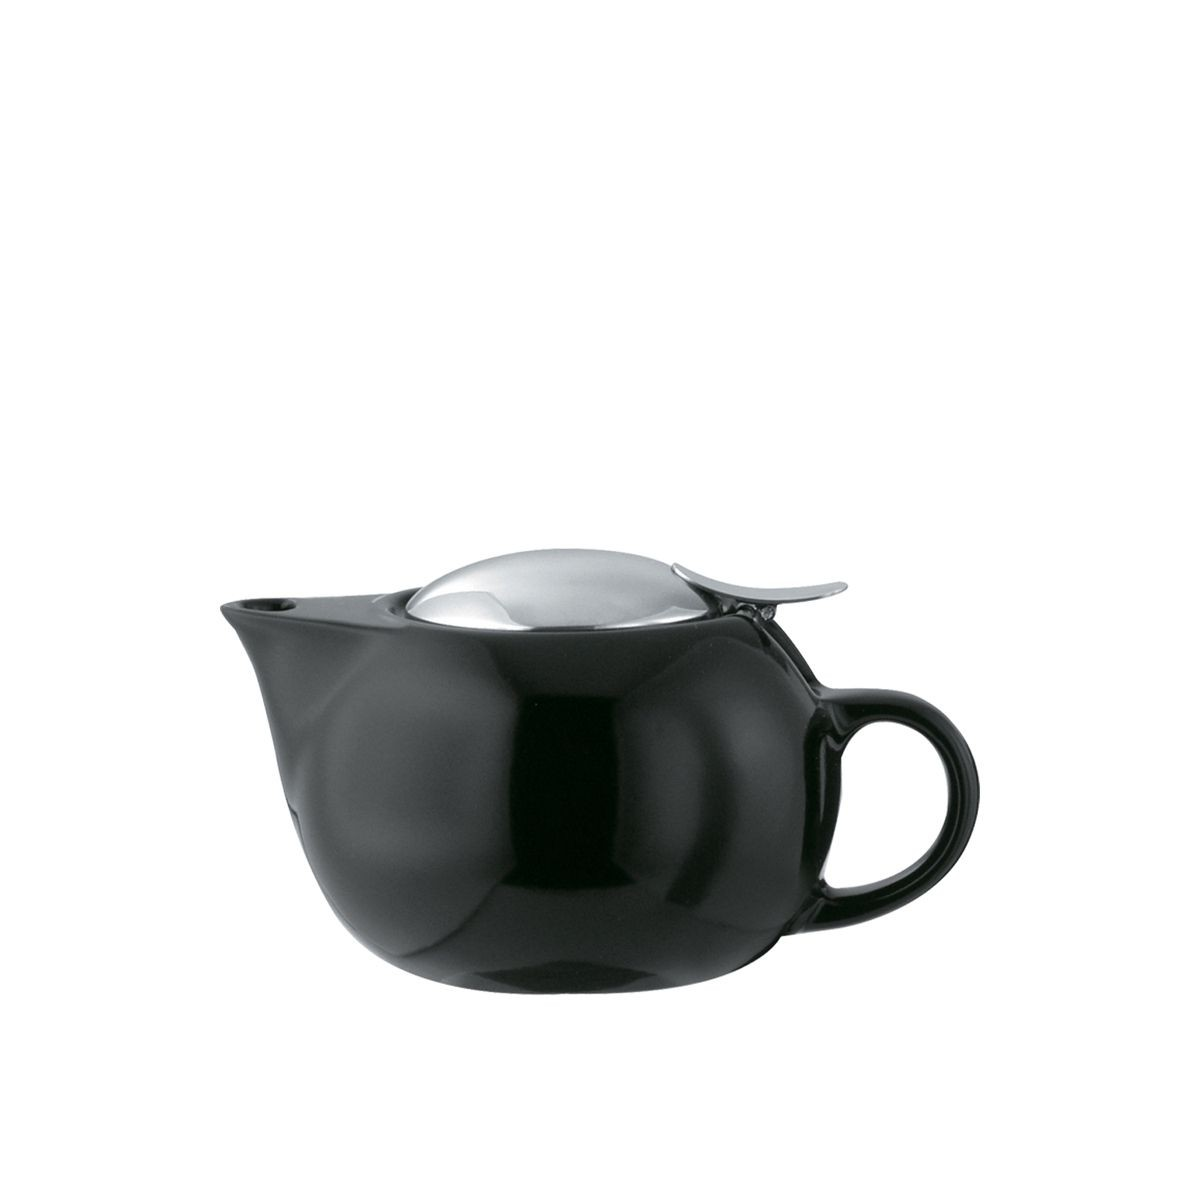 Service Ideas TPC16BL Black Ceramic Teapot with Lid, Infuser Basket, 16 oz.